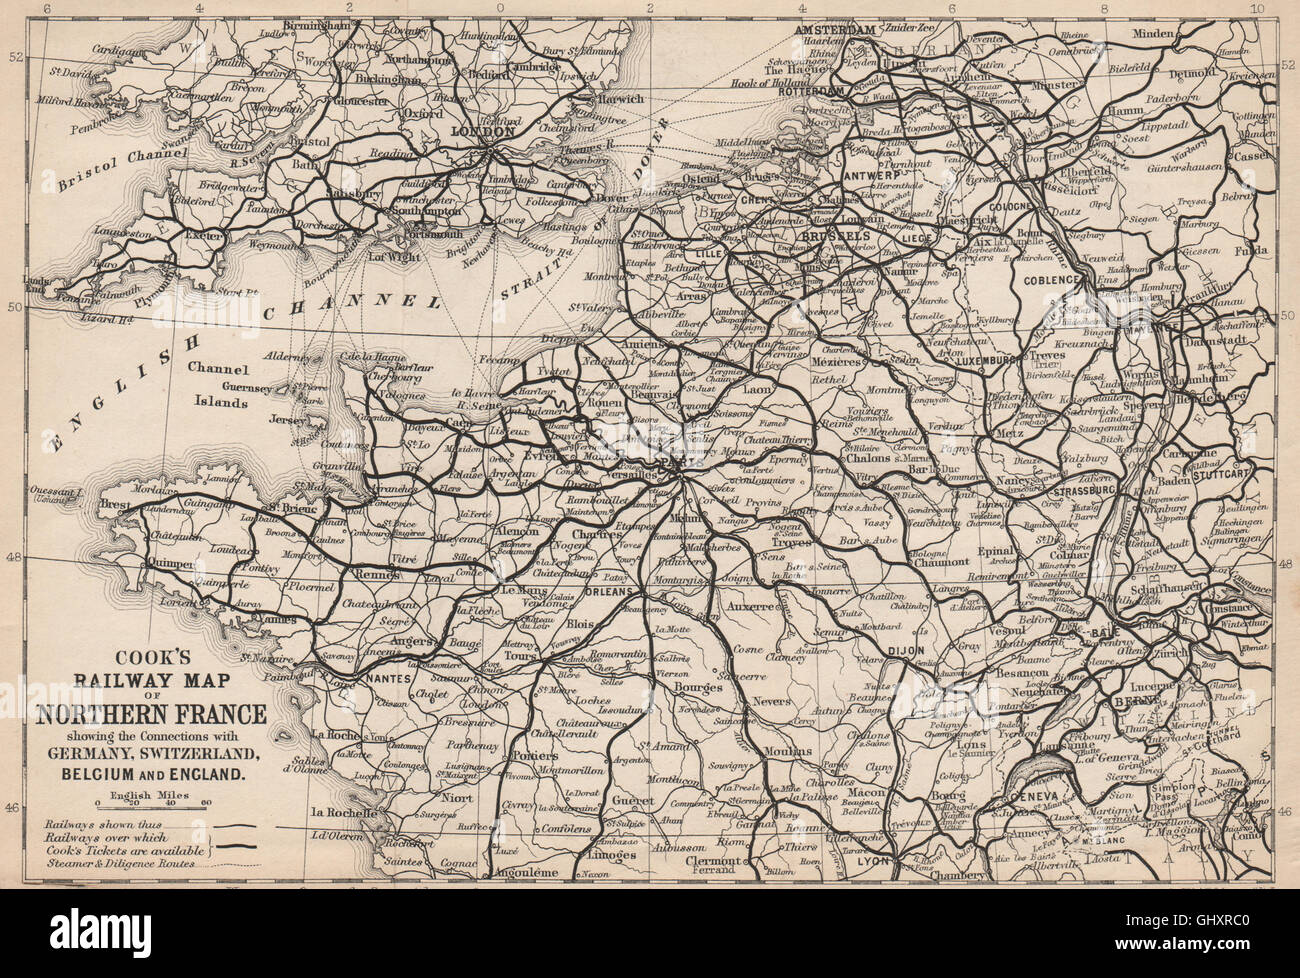 Map Of France Germany Switzerland.Nw Europe Railways France Germany Switzerland Belgium Stock Photo